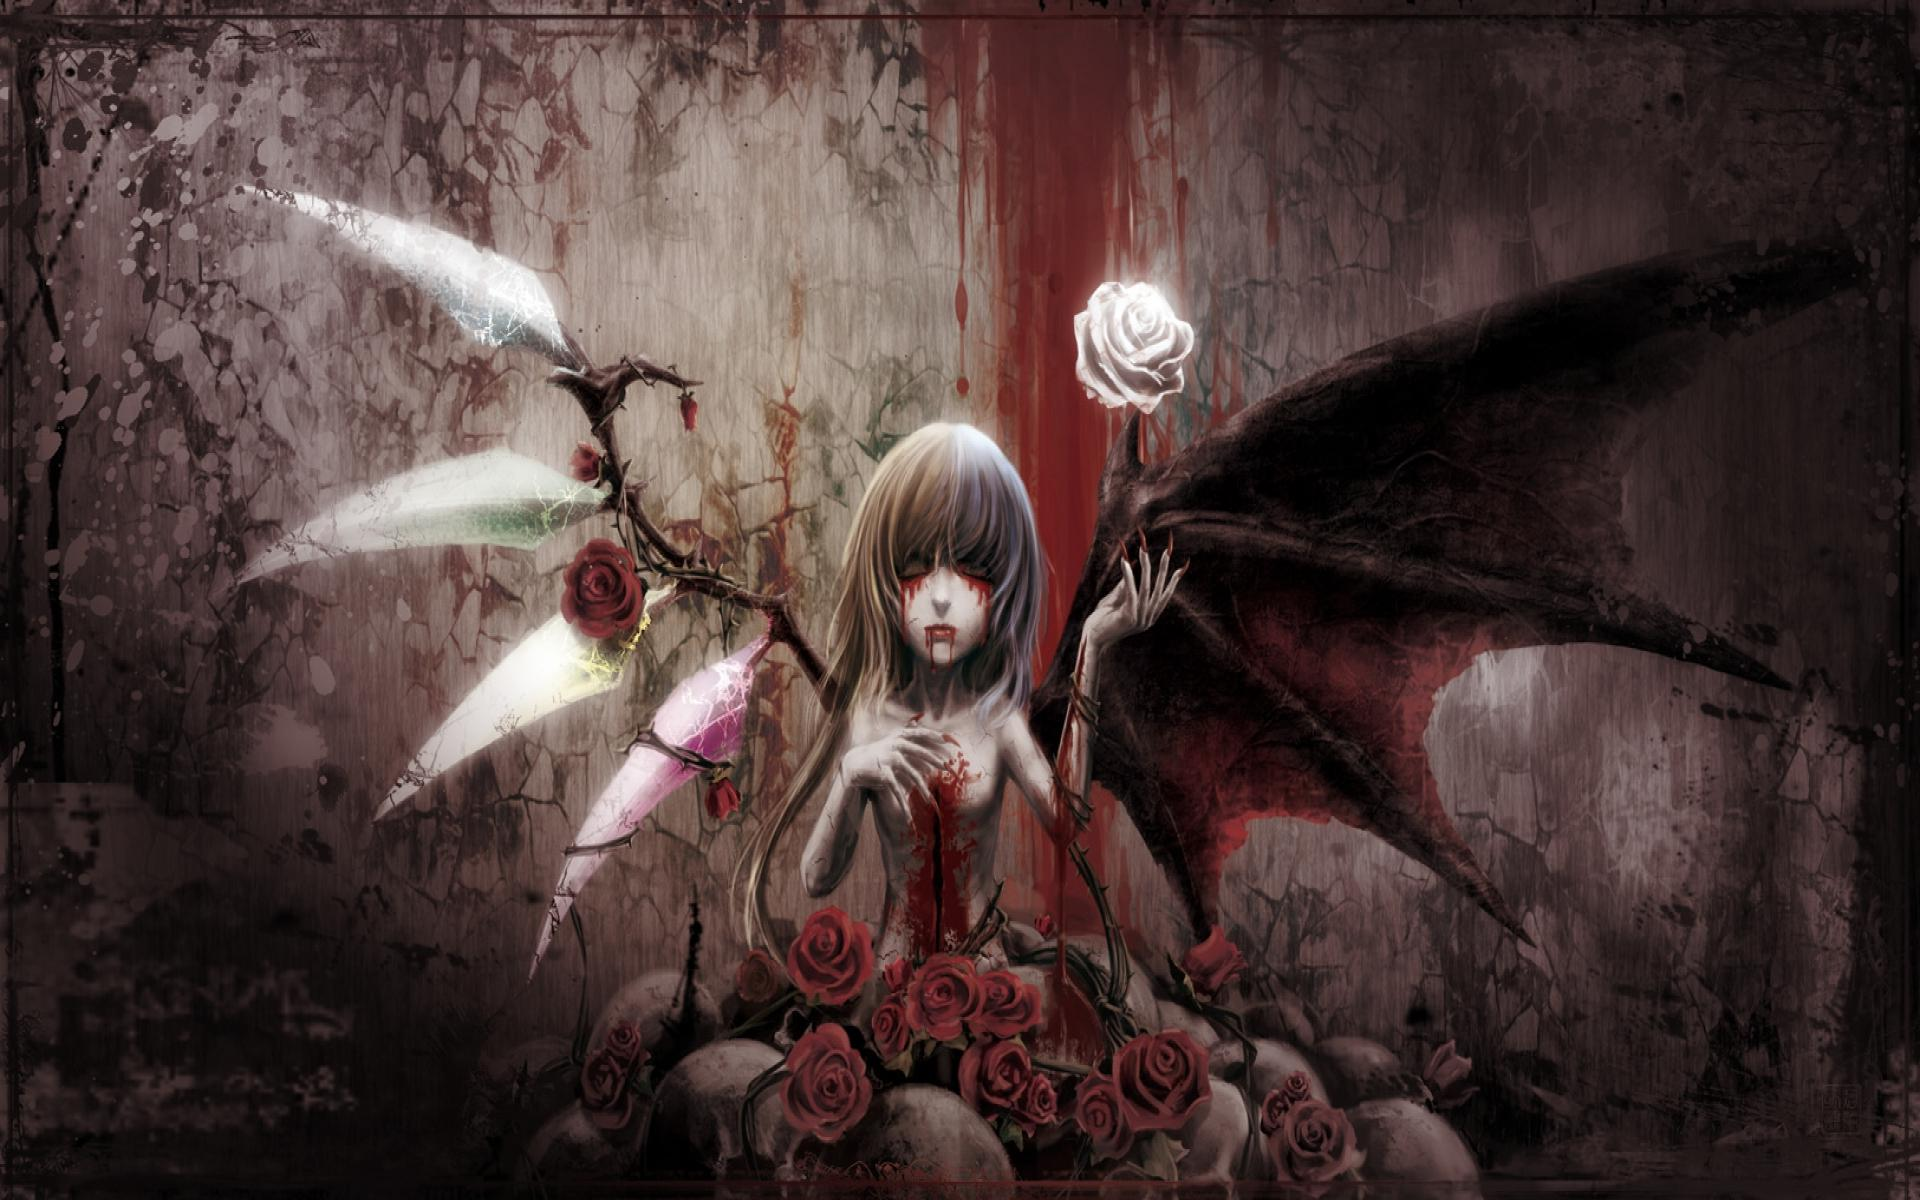 1920x1200 horror anime wallpaper 4880357 - action-adventure.info